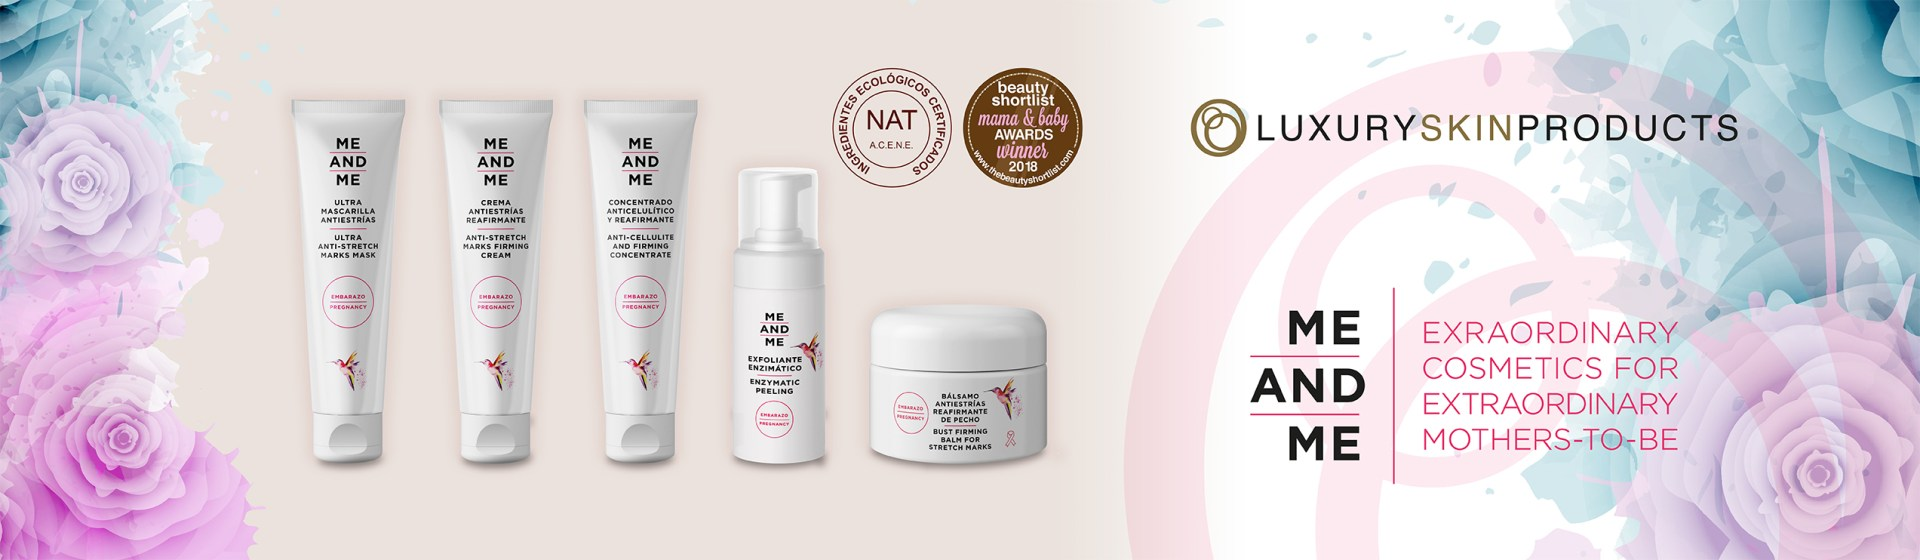 Me and Me - Extraordinary cosmetics for extraordinary mothers-to-be